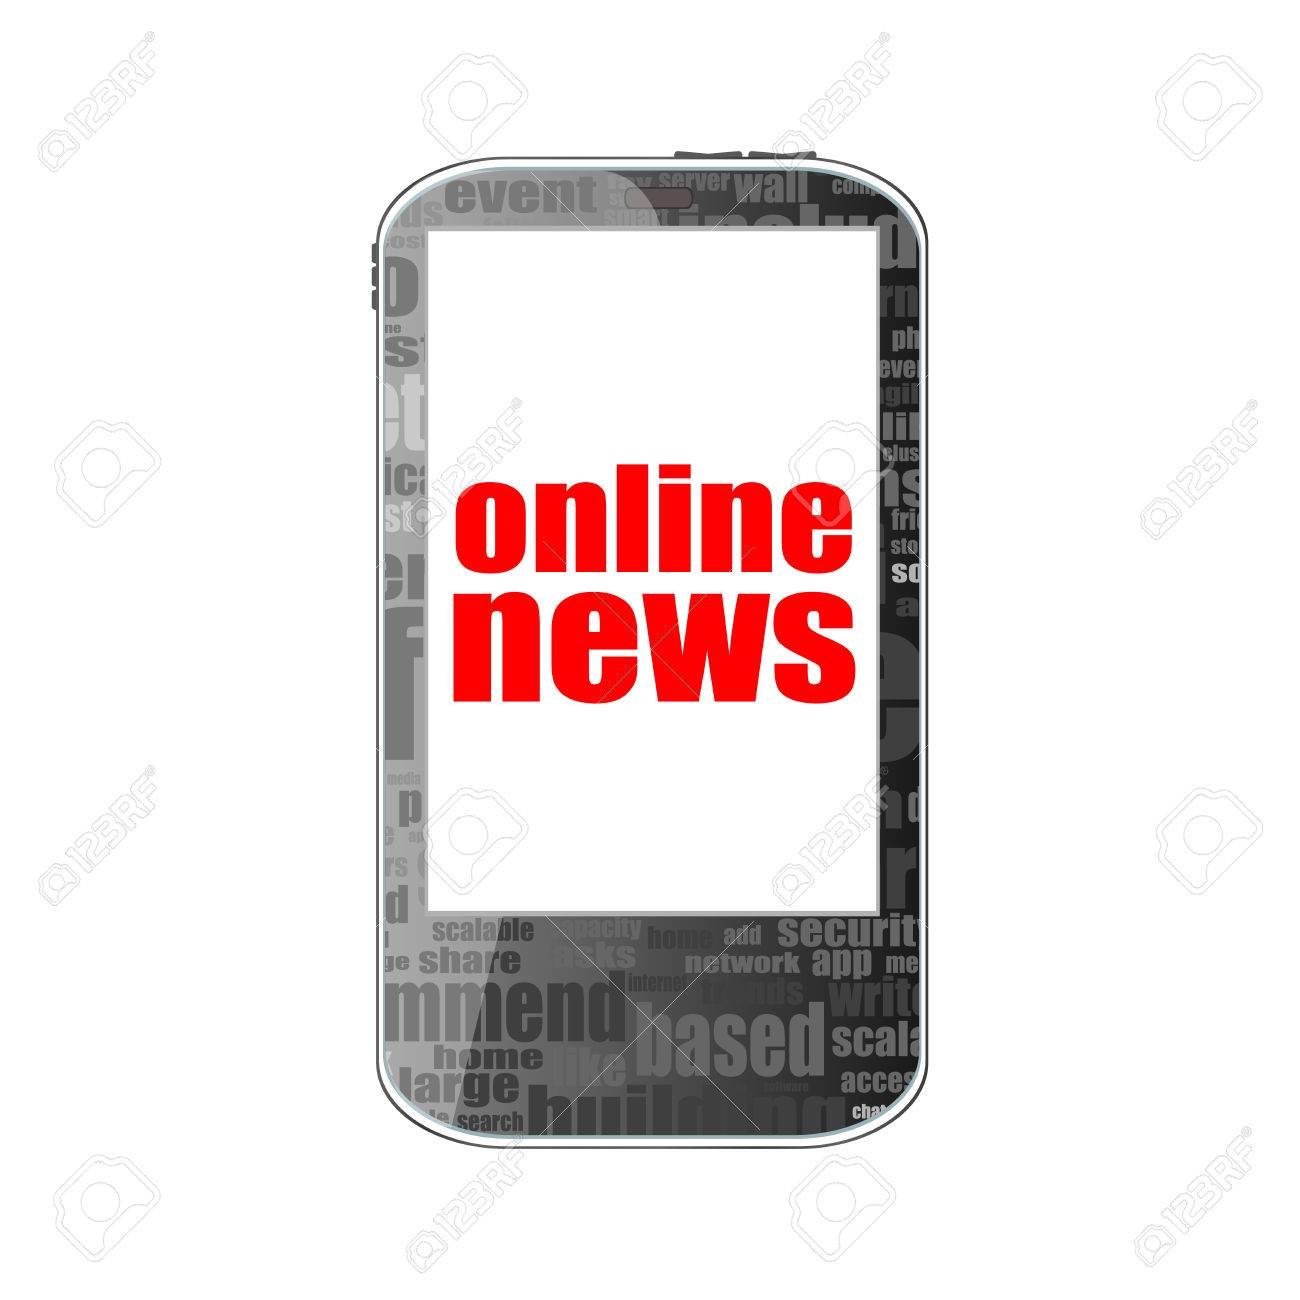 7d72068e7eee57 News concept. smartphone with online mobile news on display. Mobile phone  isolated on white